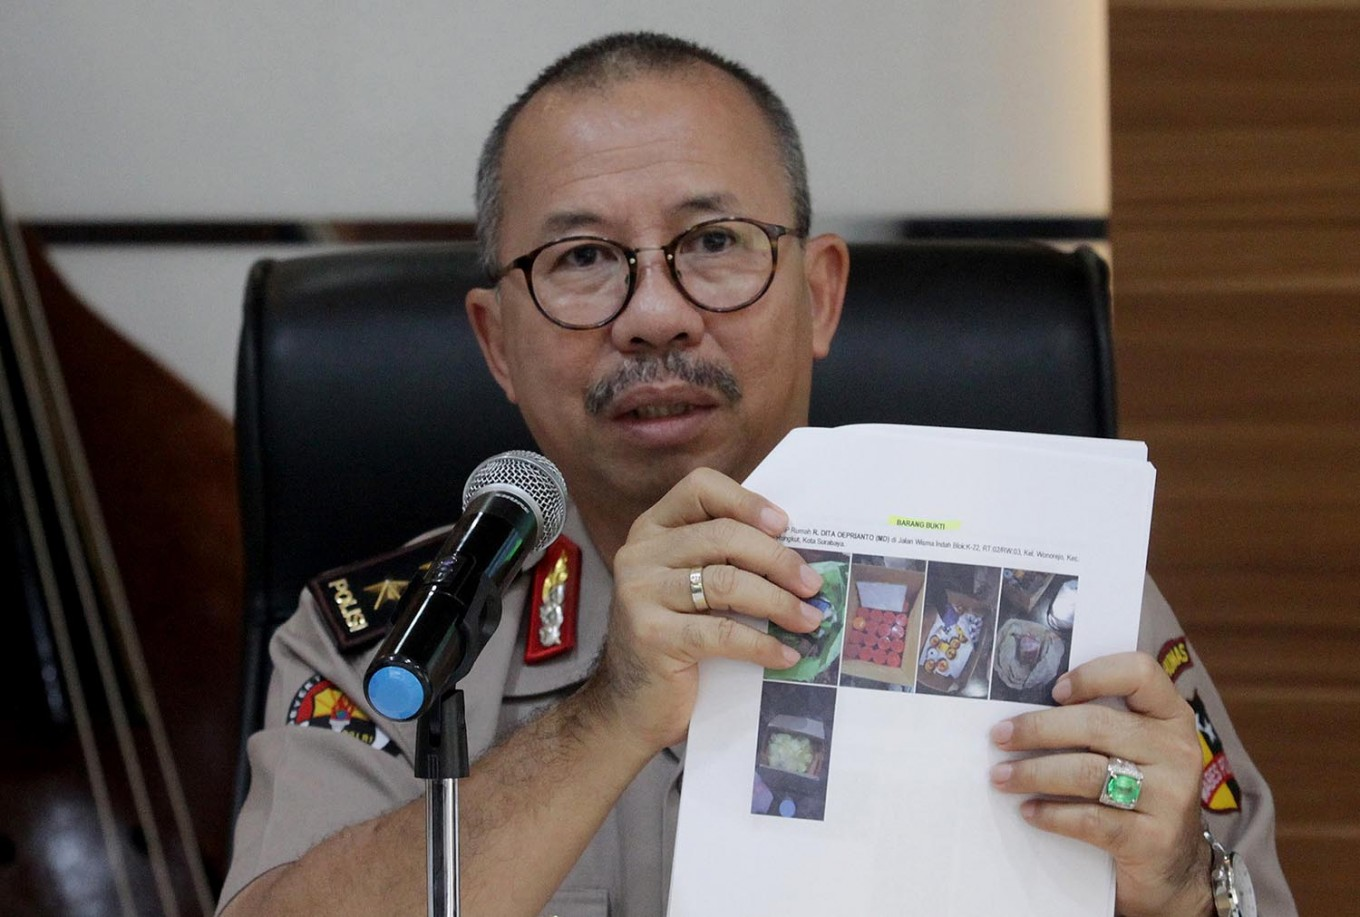 Riau Police succeeded in stopping attack: National Police